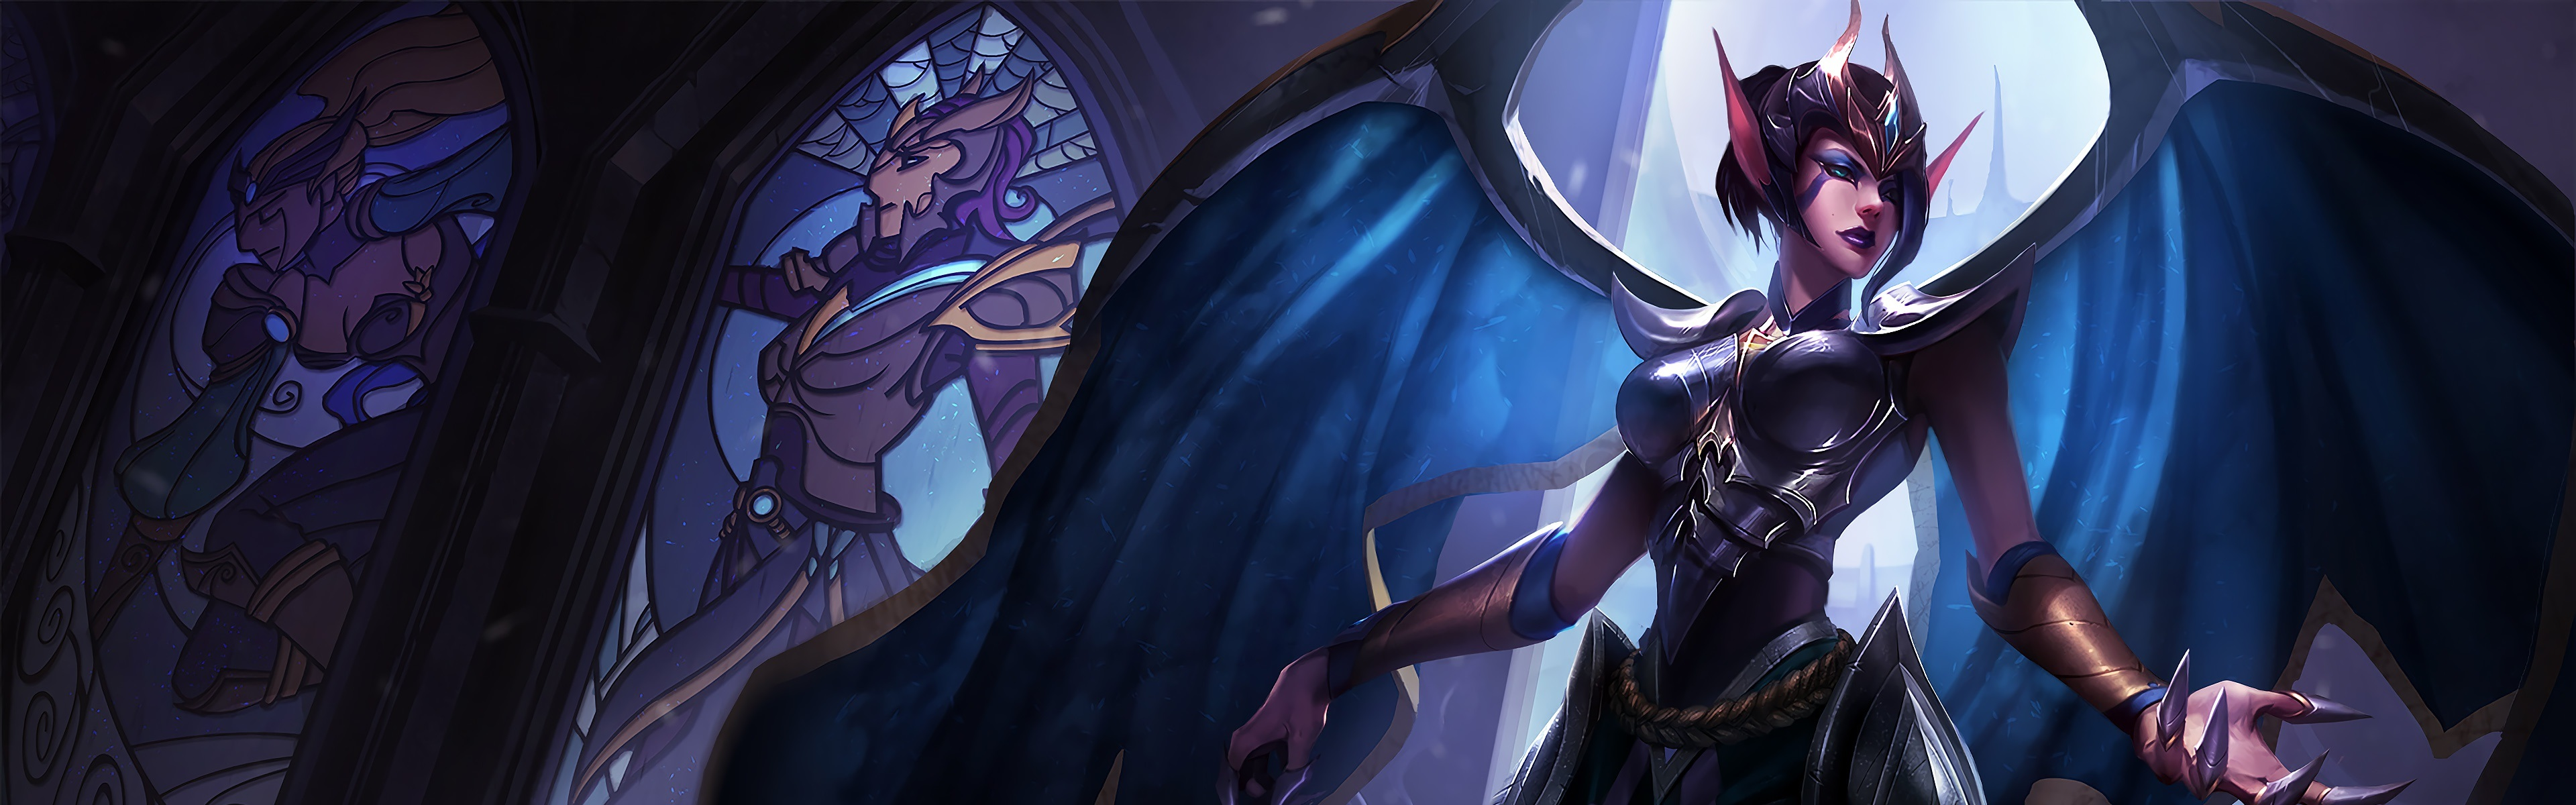 the best league of legends champions for beginners pcgamesn - 600×300